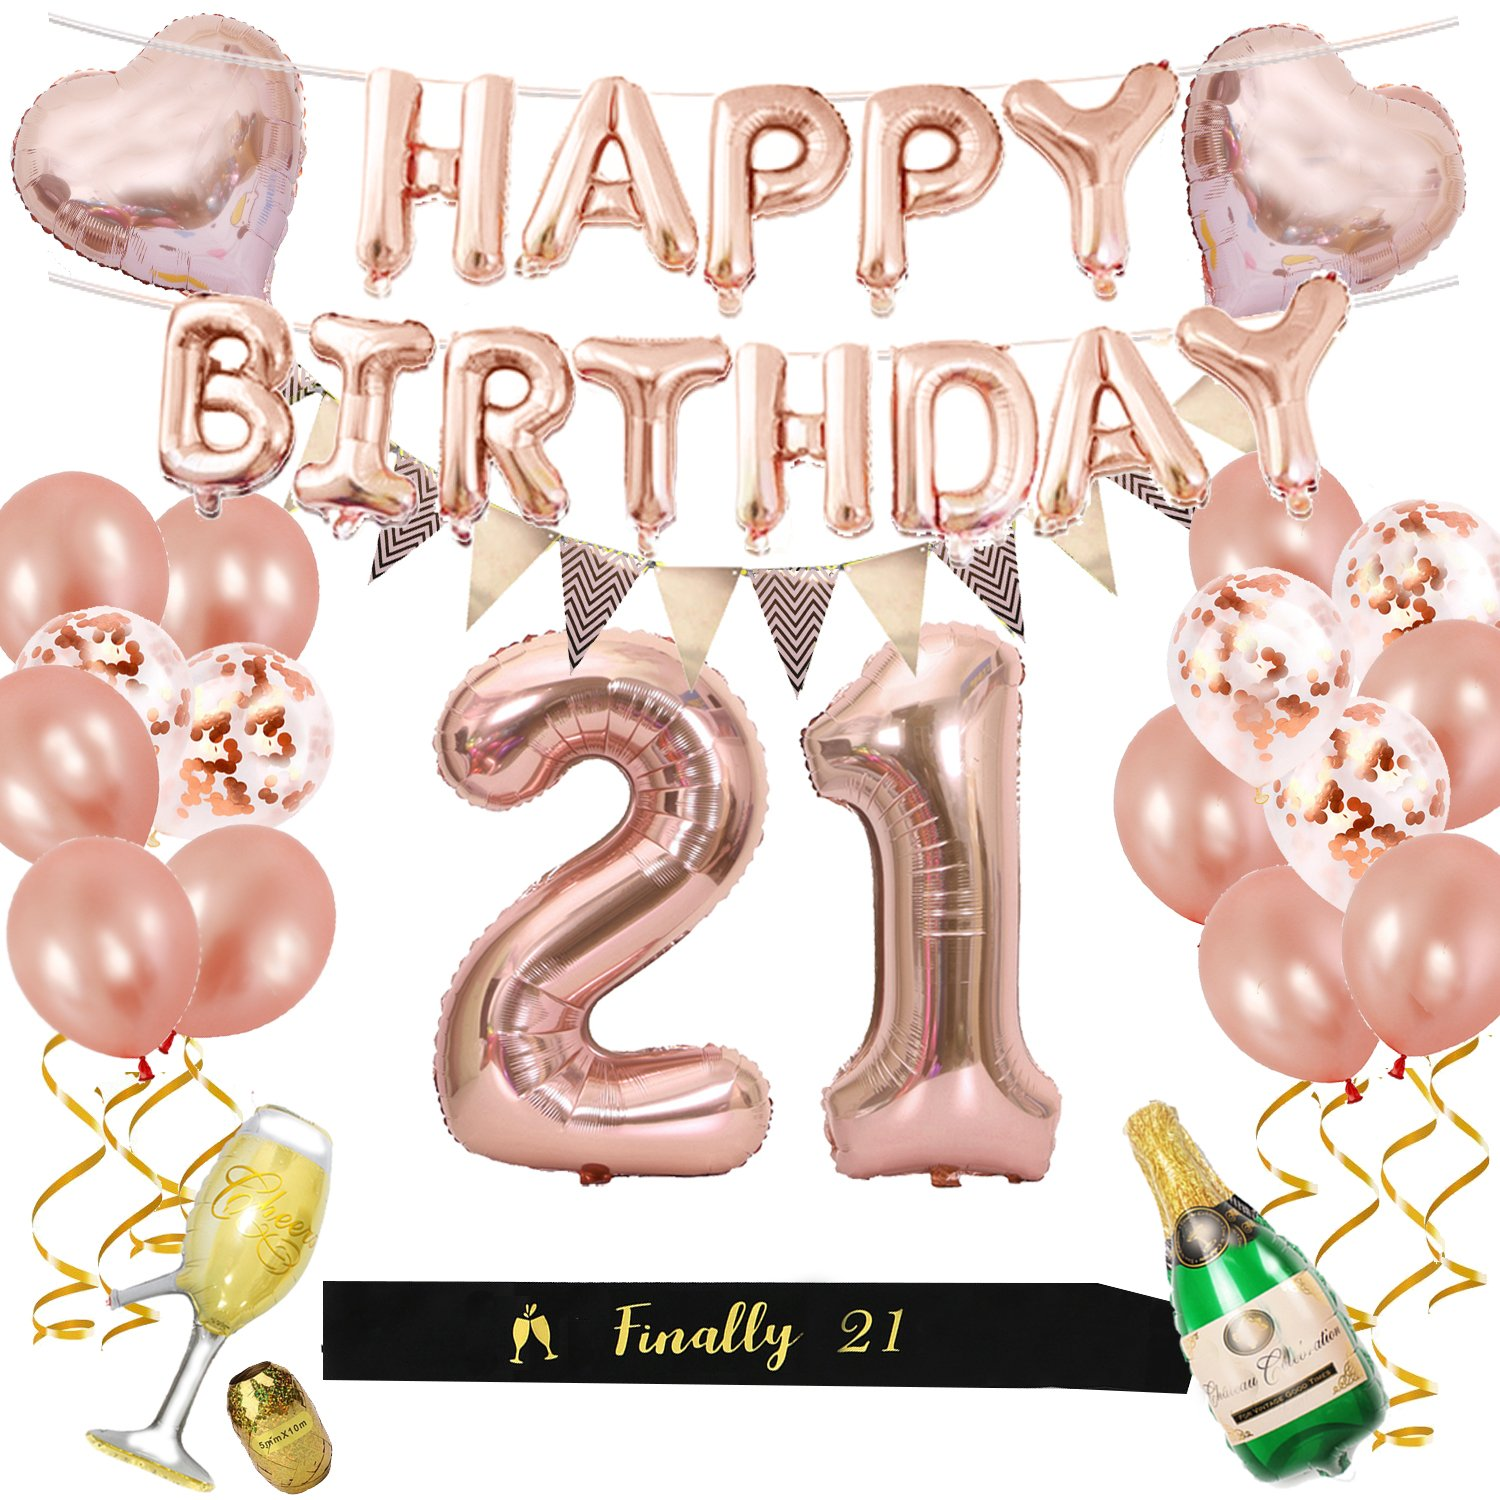 21st Birthday Decorations Kit, Rose Gold Happy Birthday Balloon Banner and Big Number 21 Balloon, Black Birthday Sash, 21 Year old Party Supplies for Her (Rose Gold)